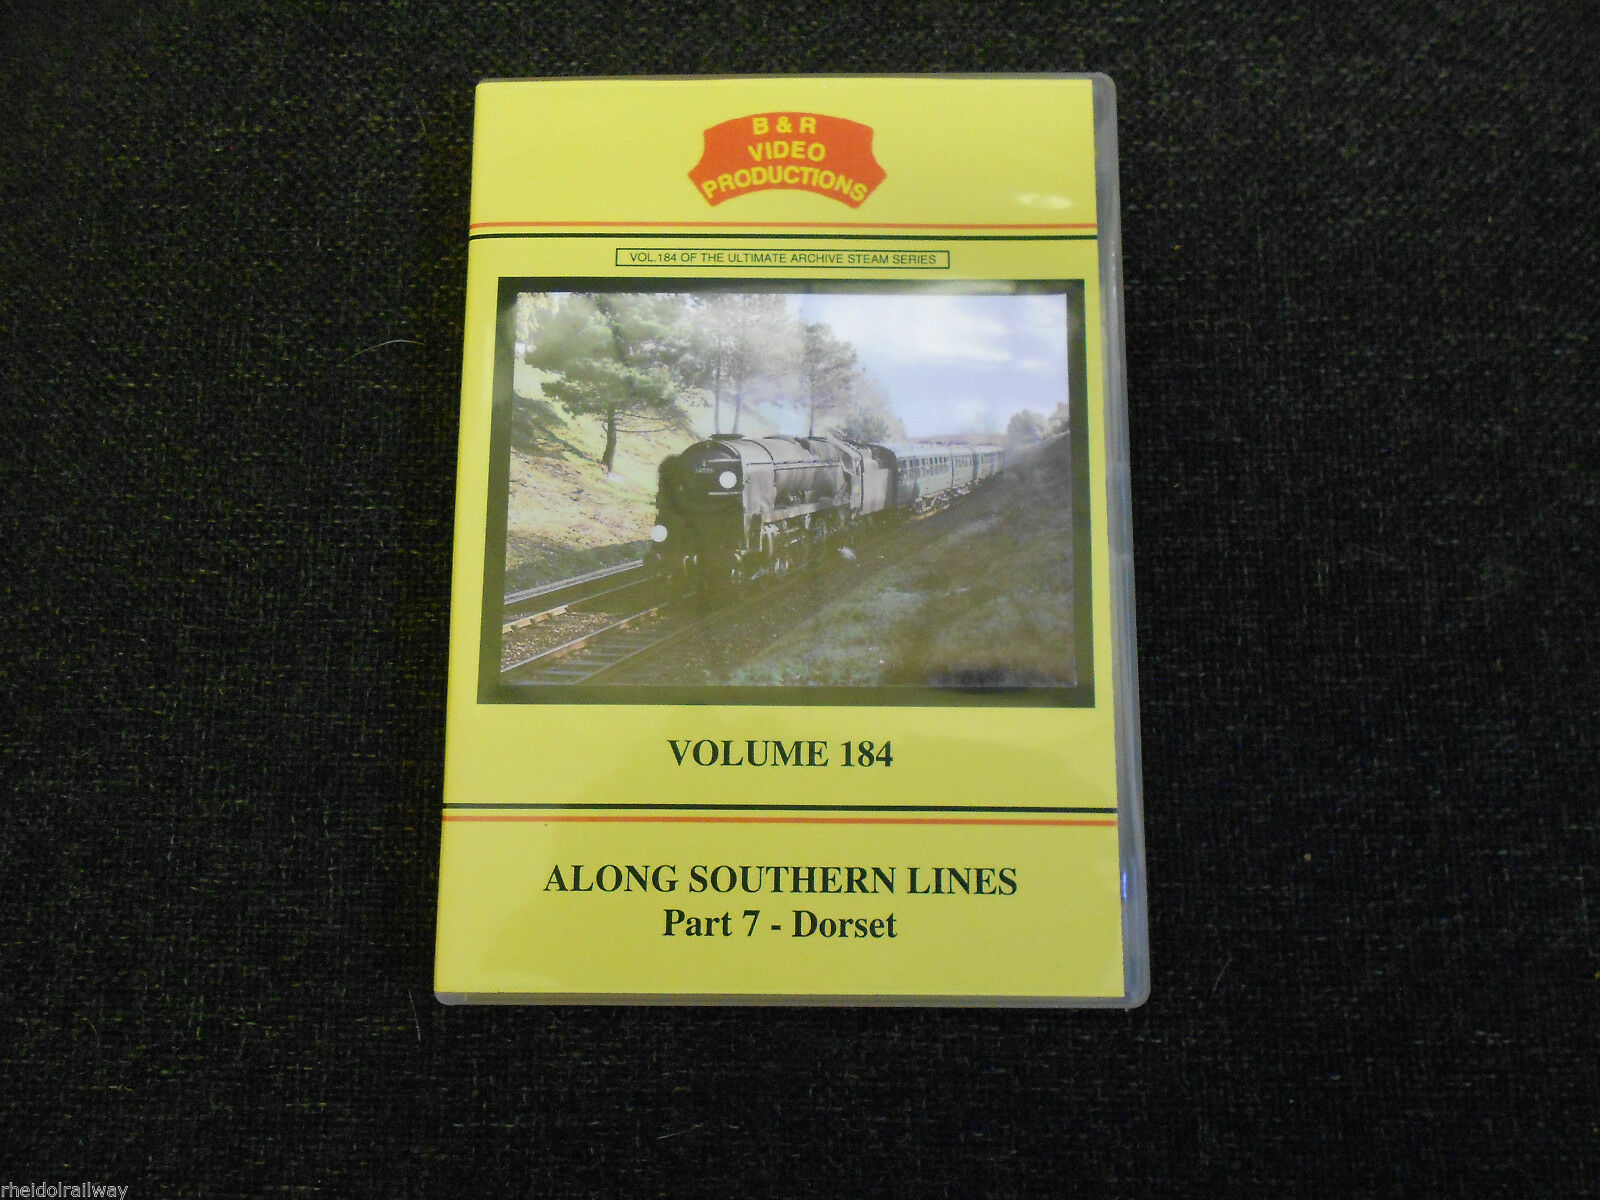 Fawley Branch, Wareham, Along Southern Lines, Part 7 - Dorset, B & R Vol 184 DVD - The Vale of Rheidol Railway